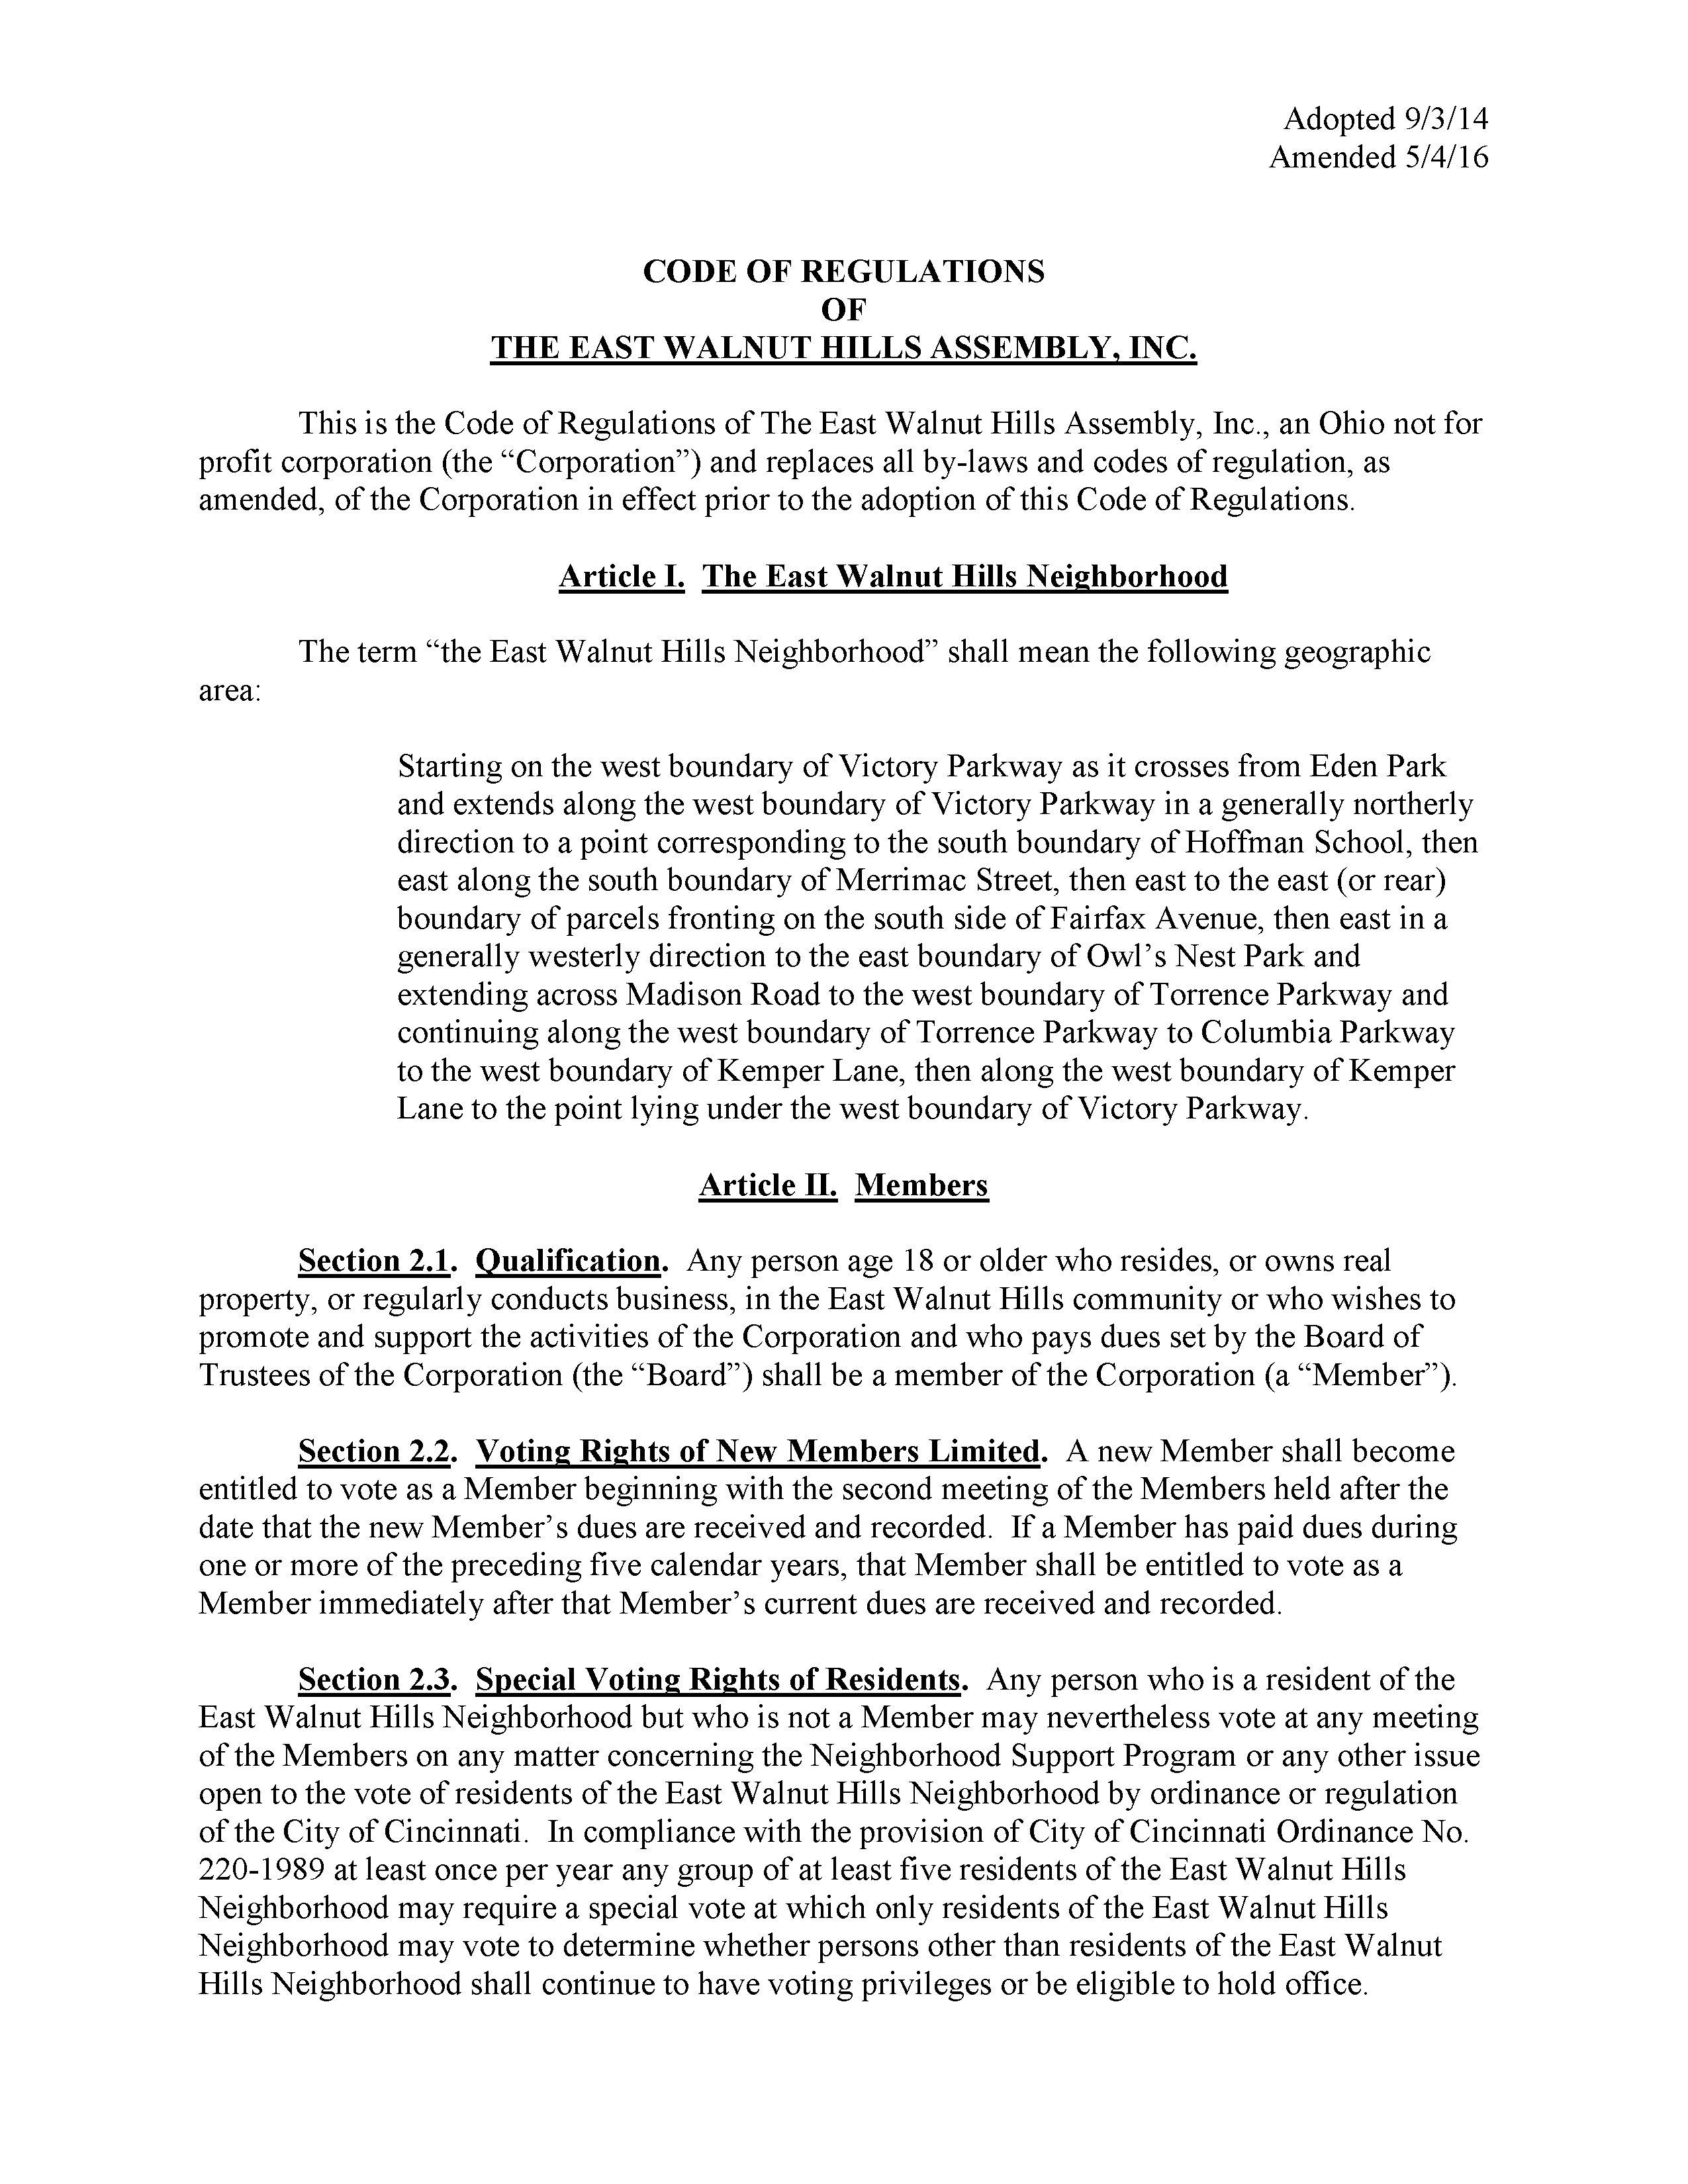 Code of Regulations, page 1